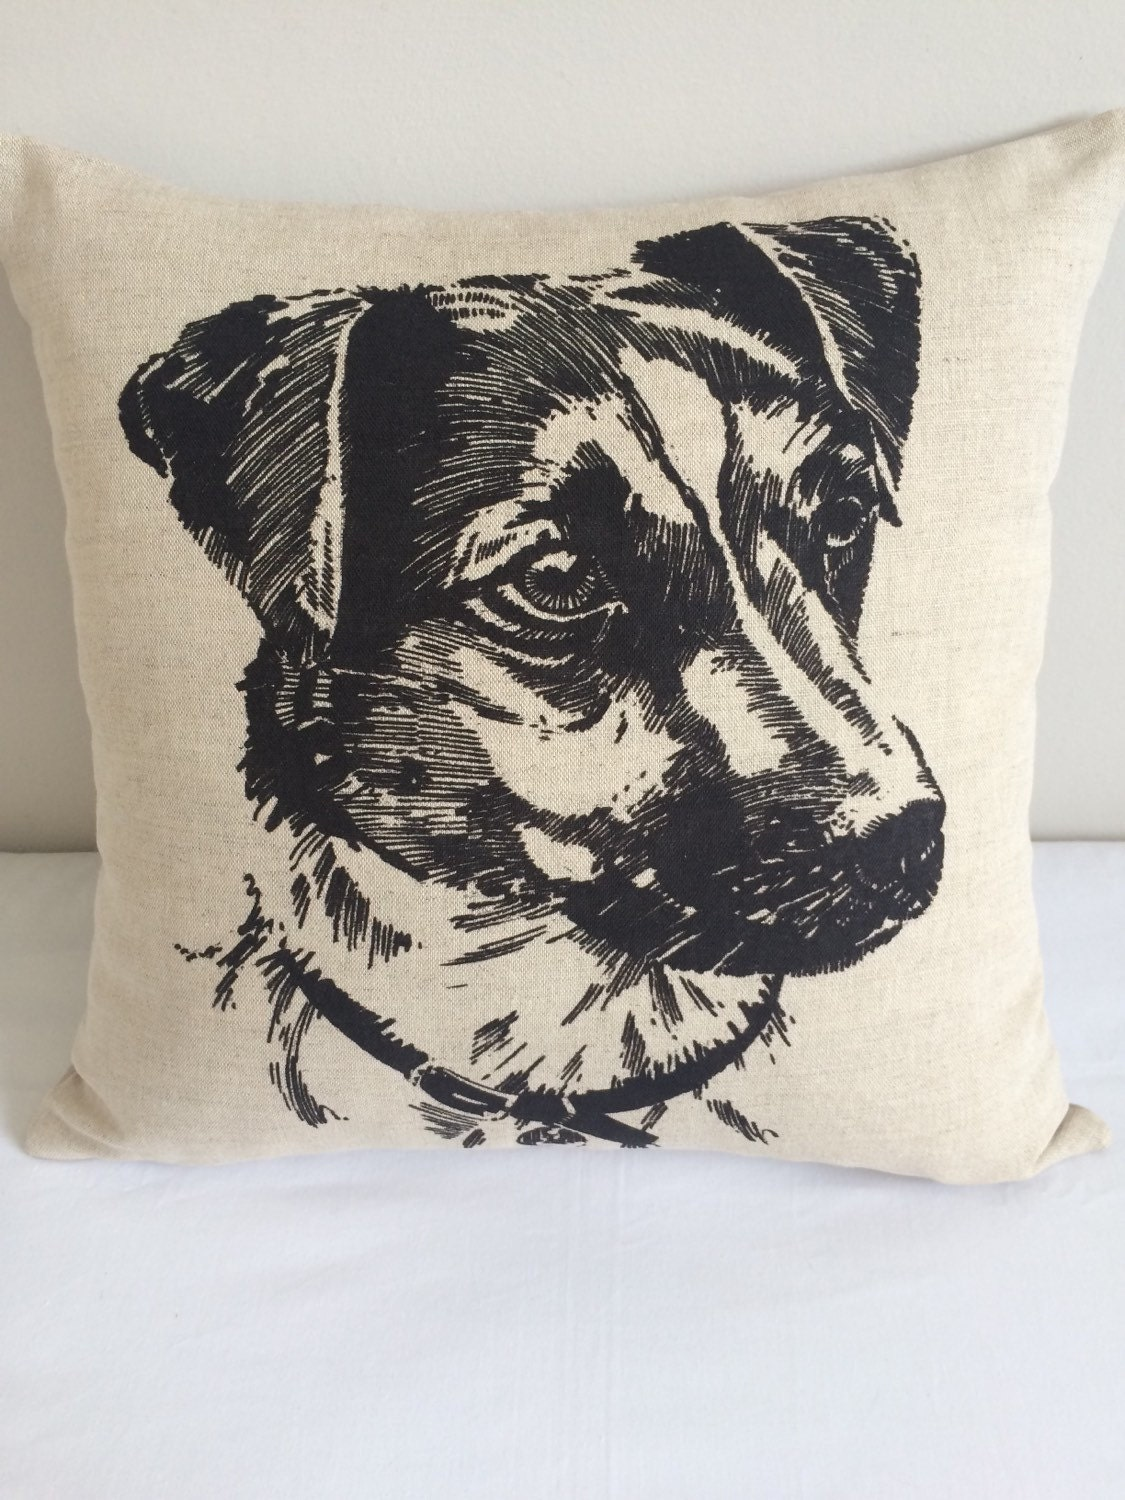 Cushion cover with Jack Russel print